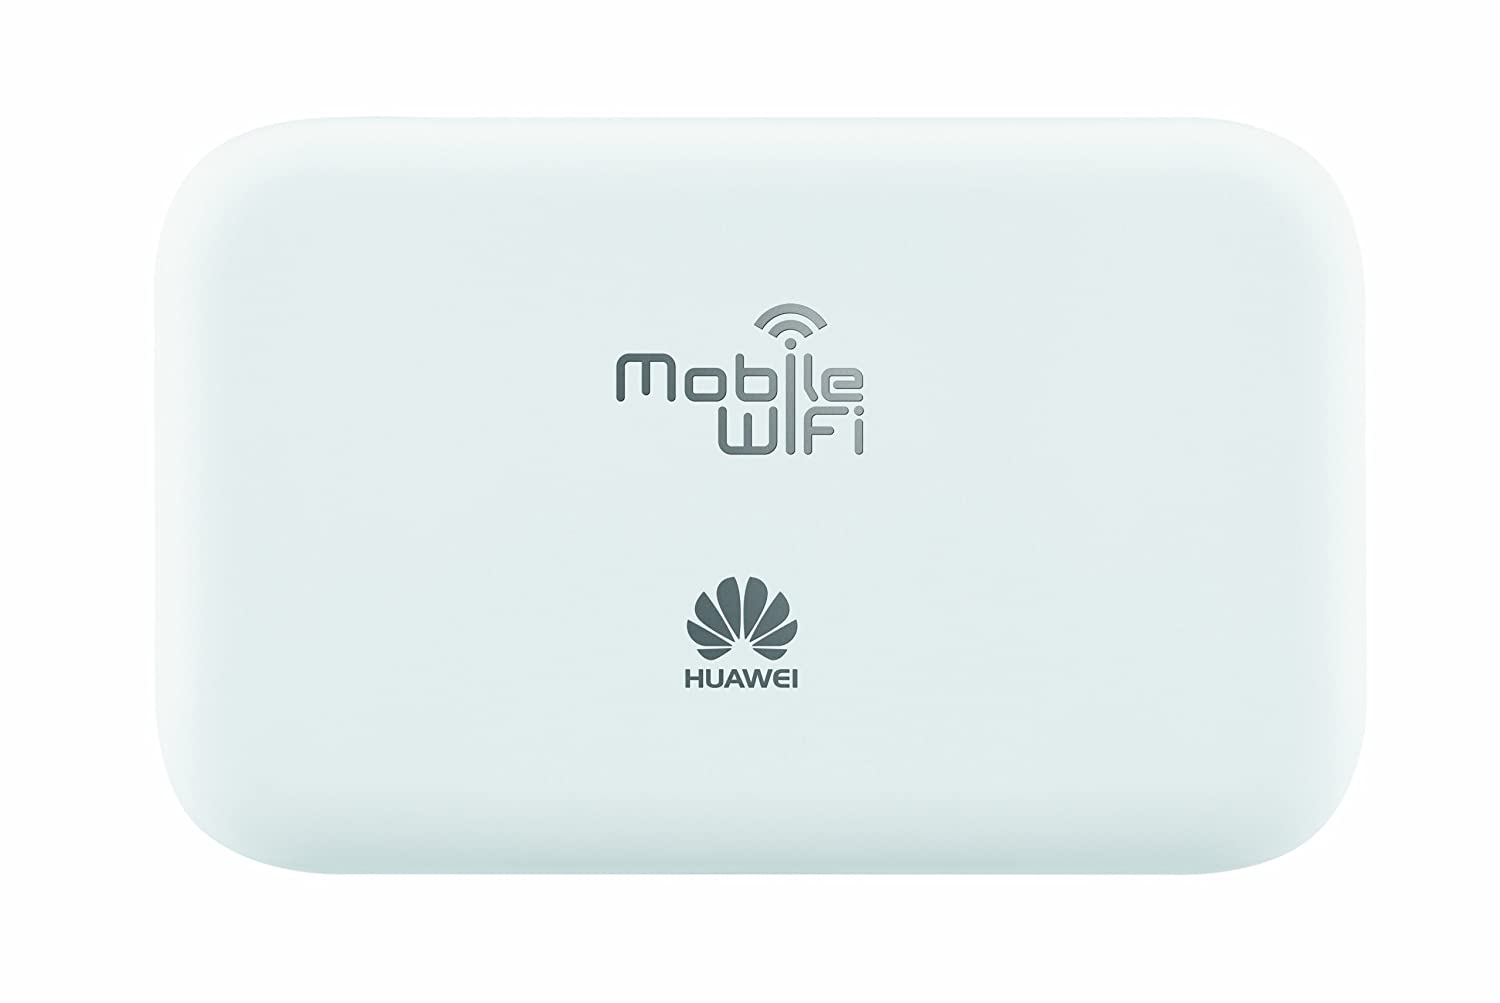 Router HUAWEI E5372s-32 150 Mbps 4G LTE /& 42 Mbps 3G Mobile WiFi Hotspot 3G Worldwide, 4G LTE in Europe, Asia, Middle East, Africa, Some South America White